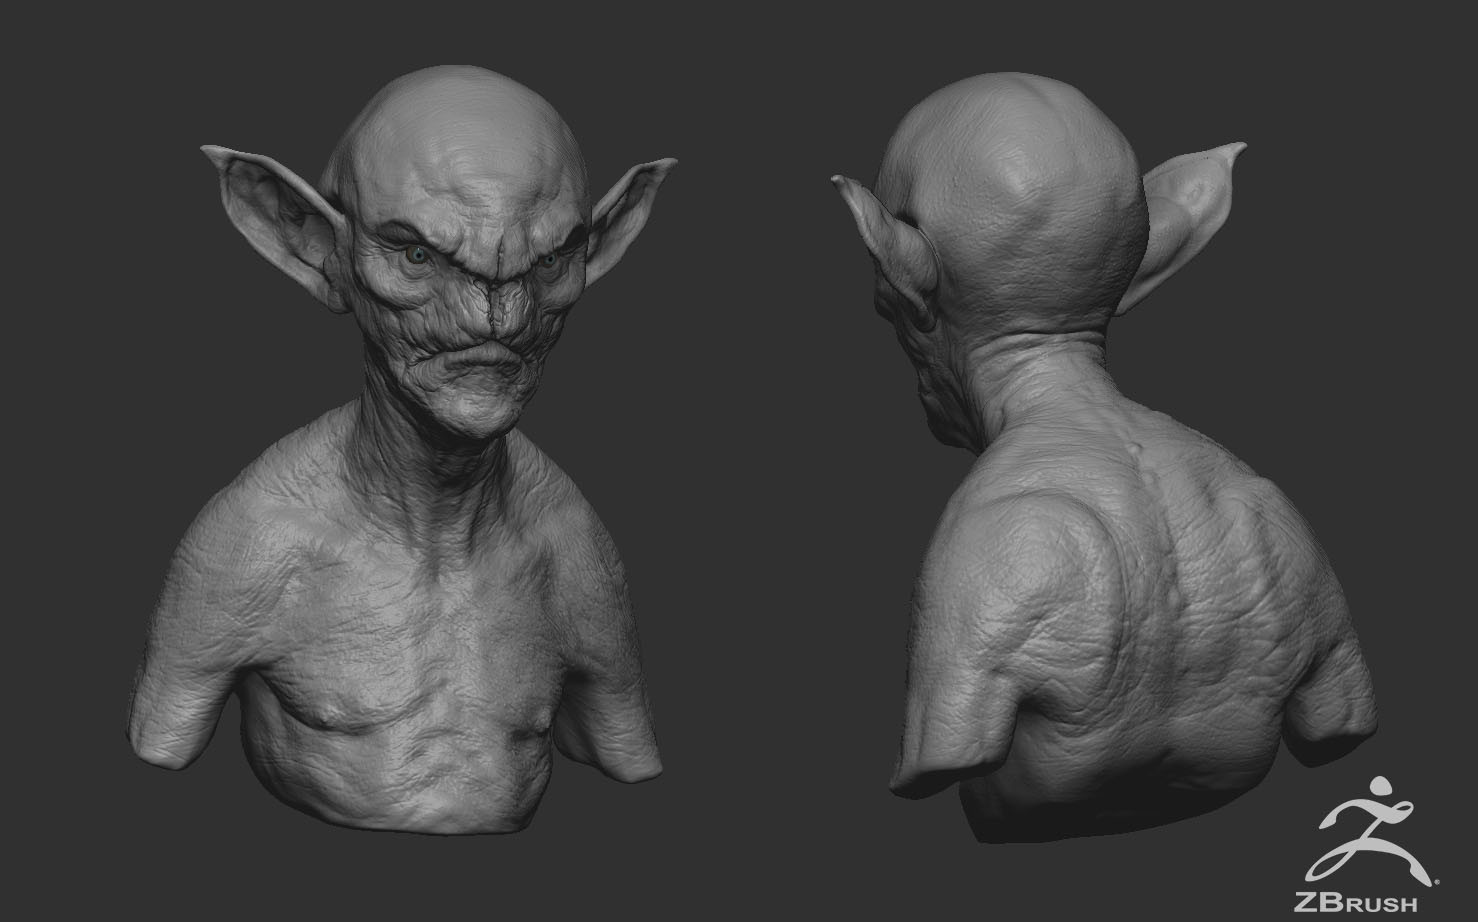 Daniel bystedt painted goblin zbrush